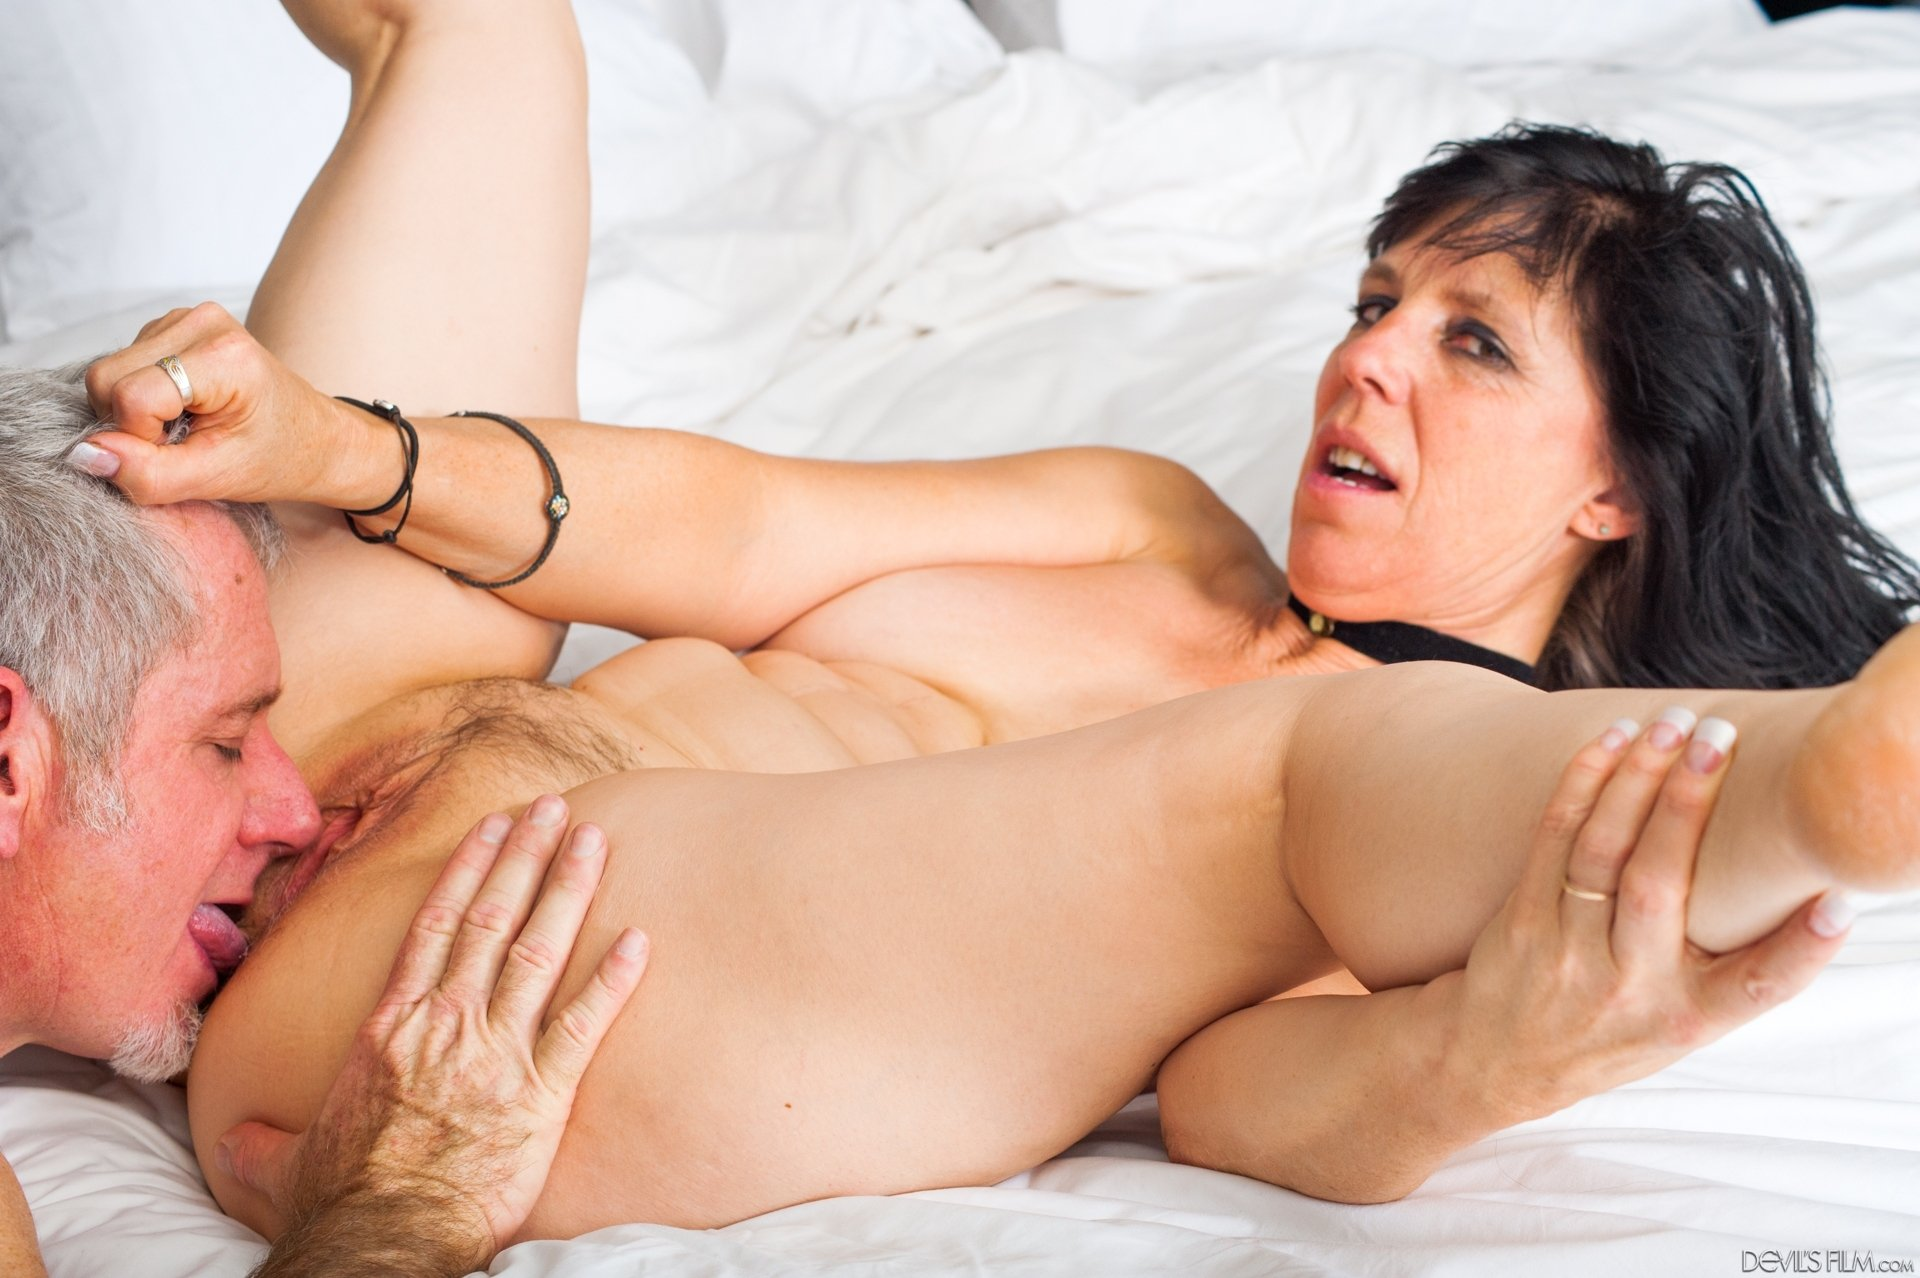 licking videos couple mature